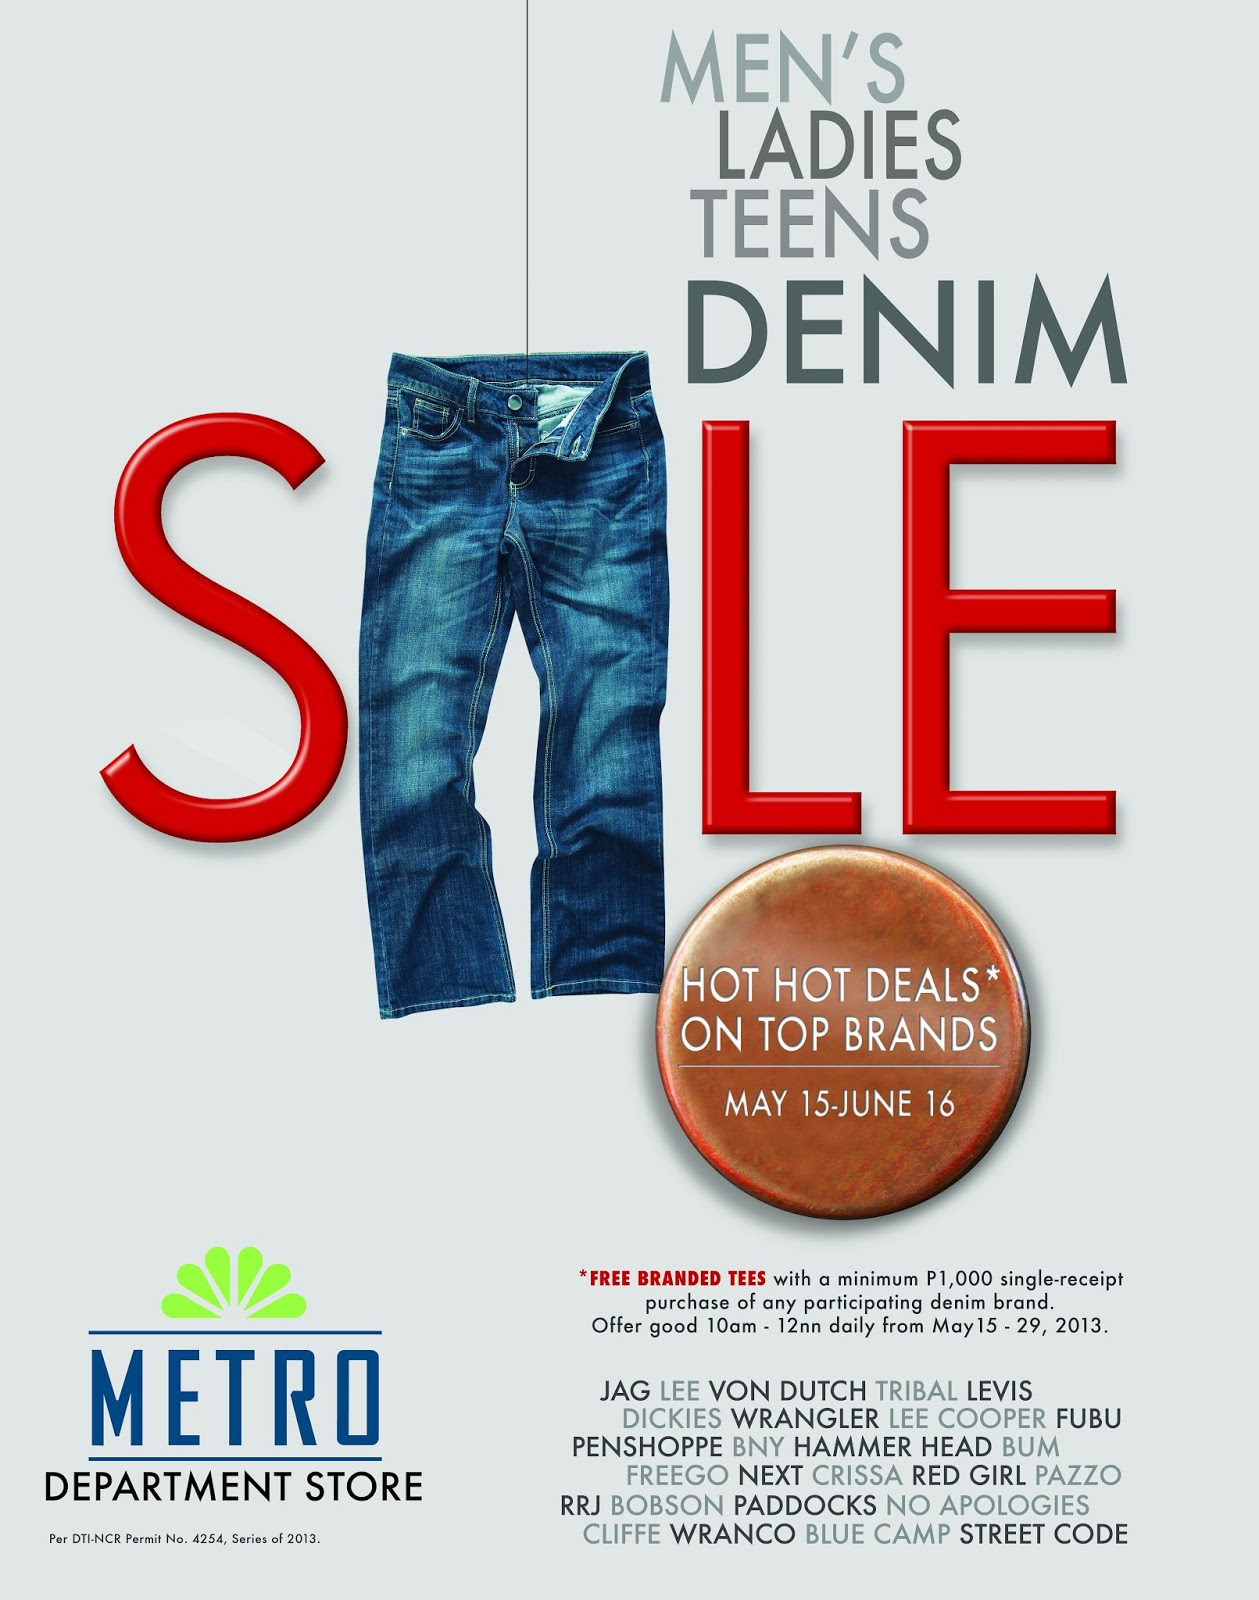 dd86db97 5/17/13. Enjoy wide selections and styles of jeans at the Metro Department  Store's ...